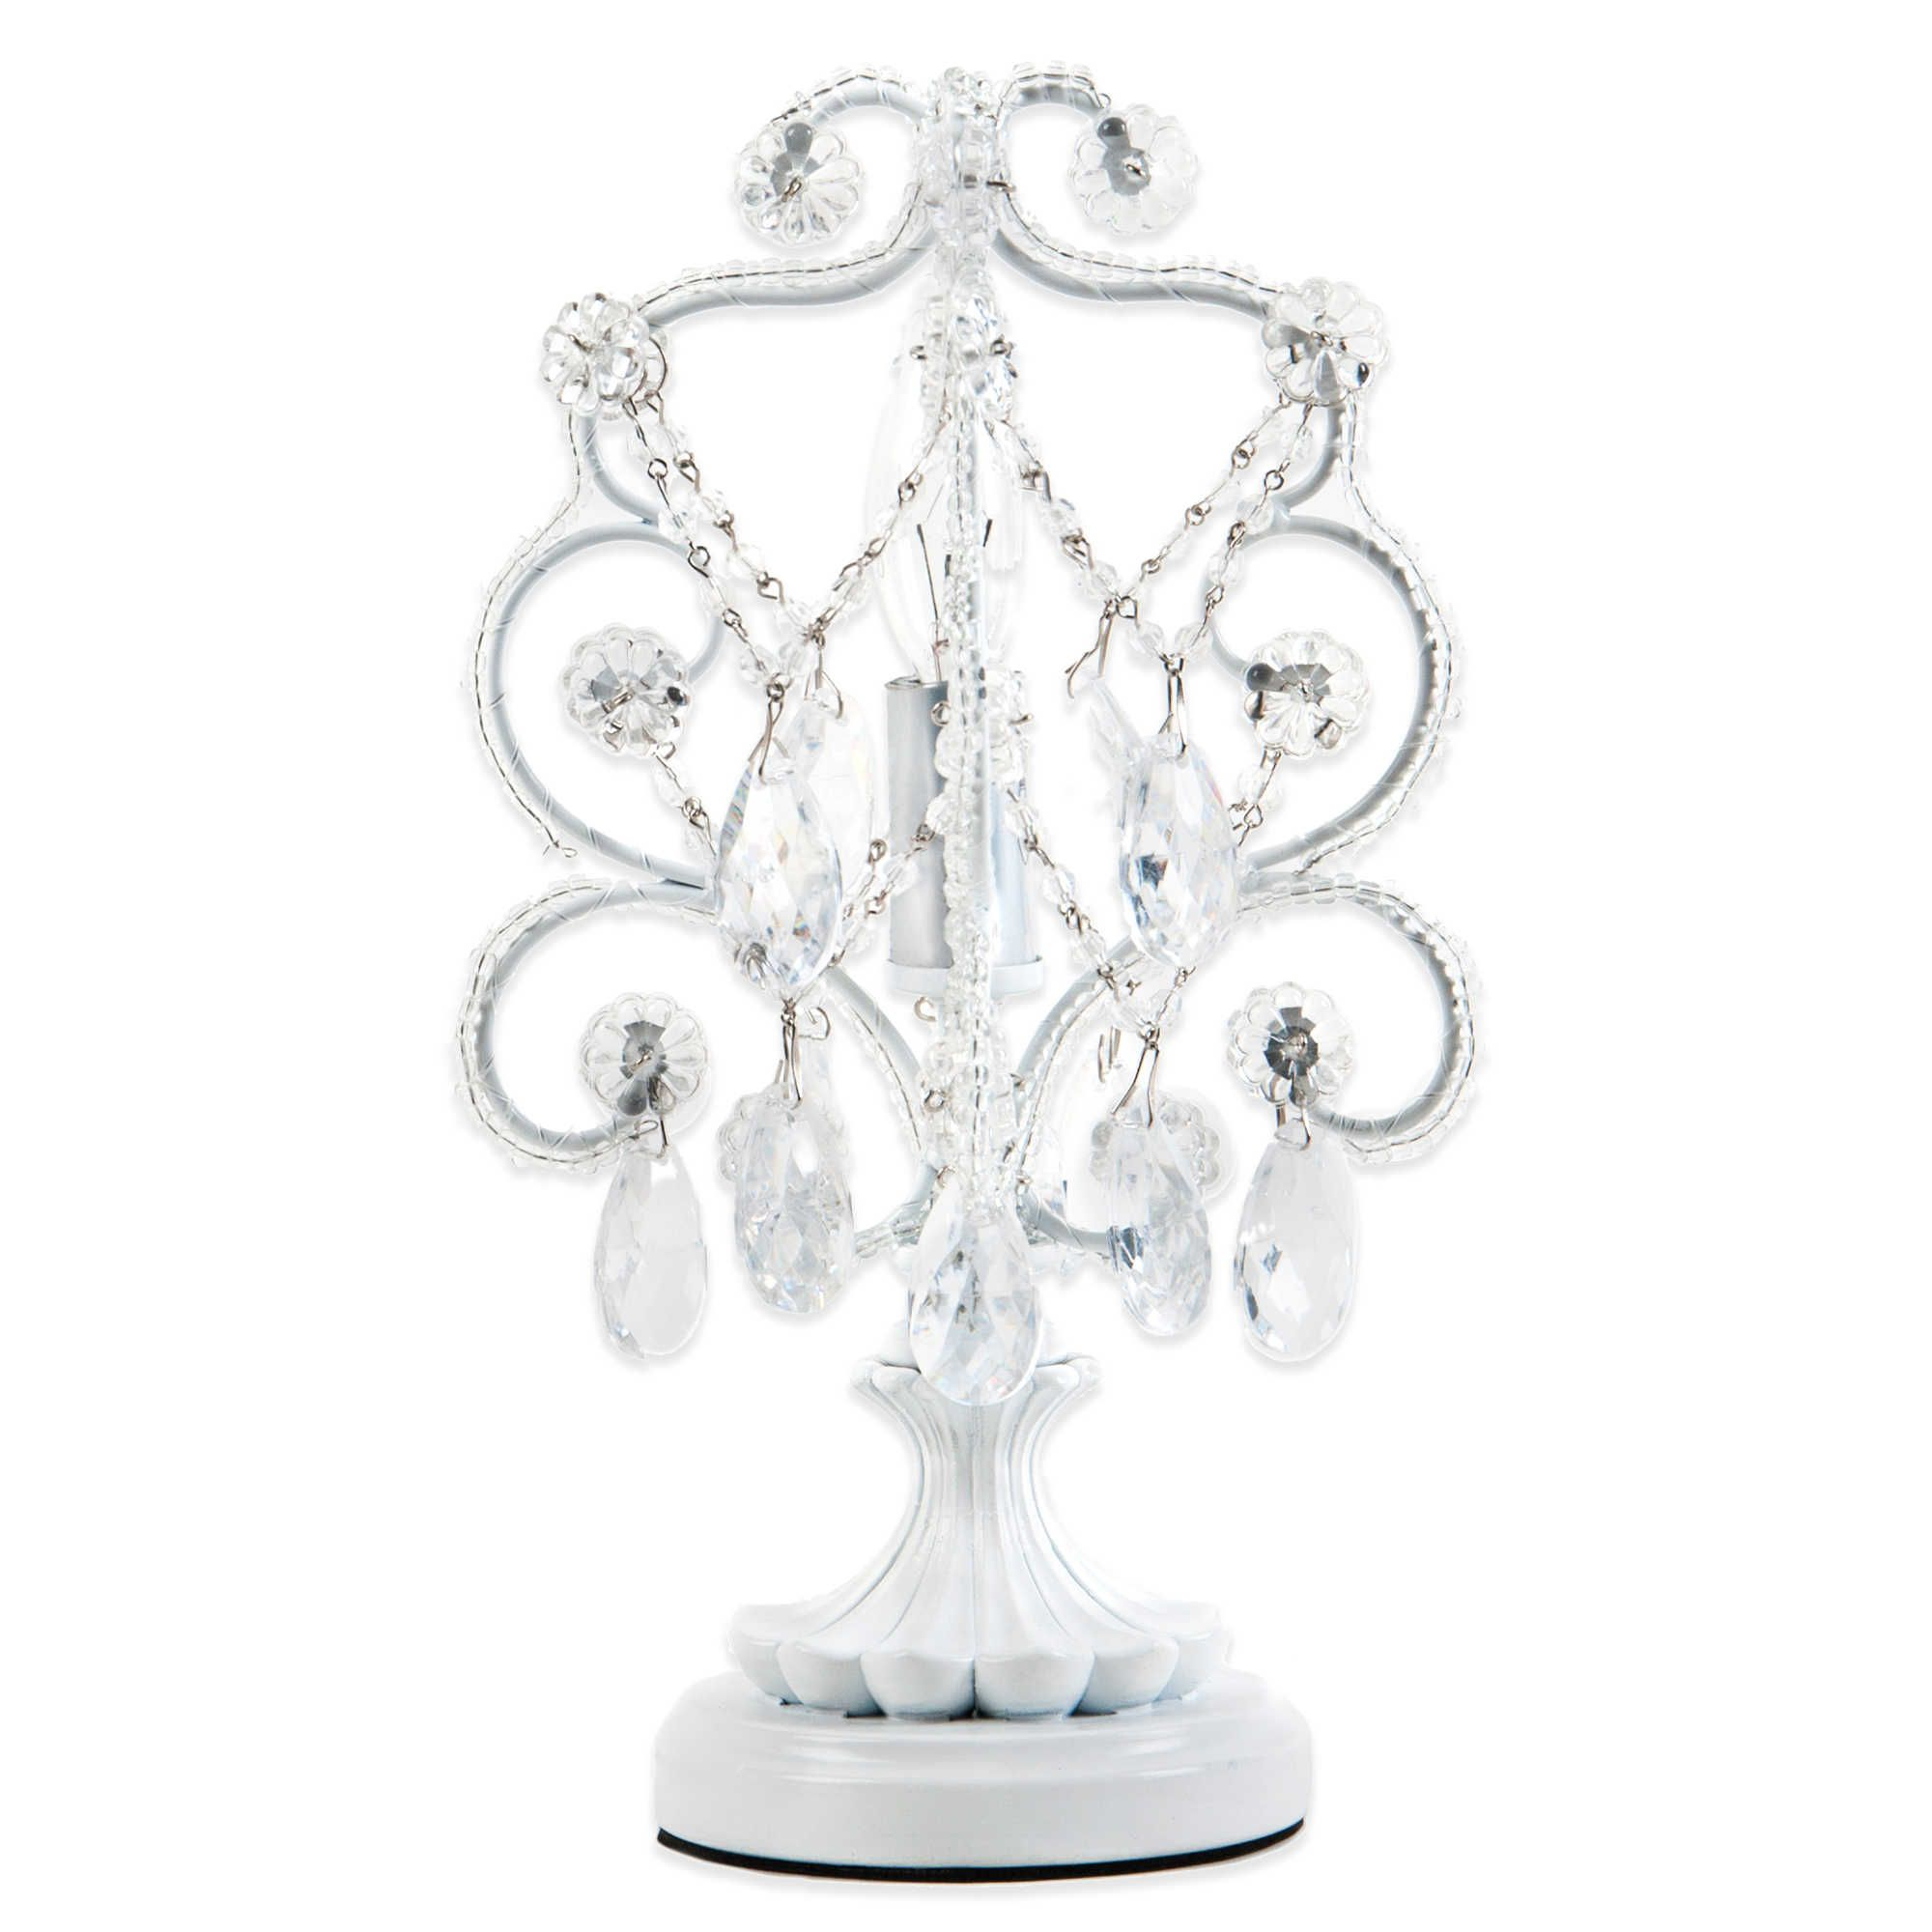 Tadpoles By Sleeping Partners Mini Chandelier Table Lamp In White Diamond